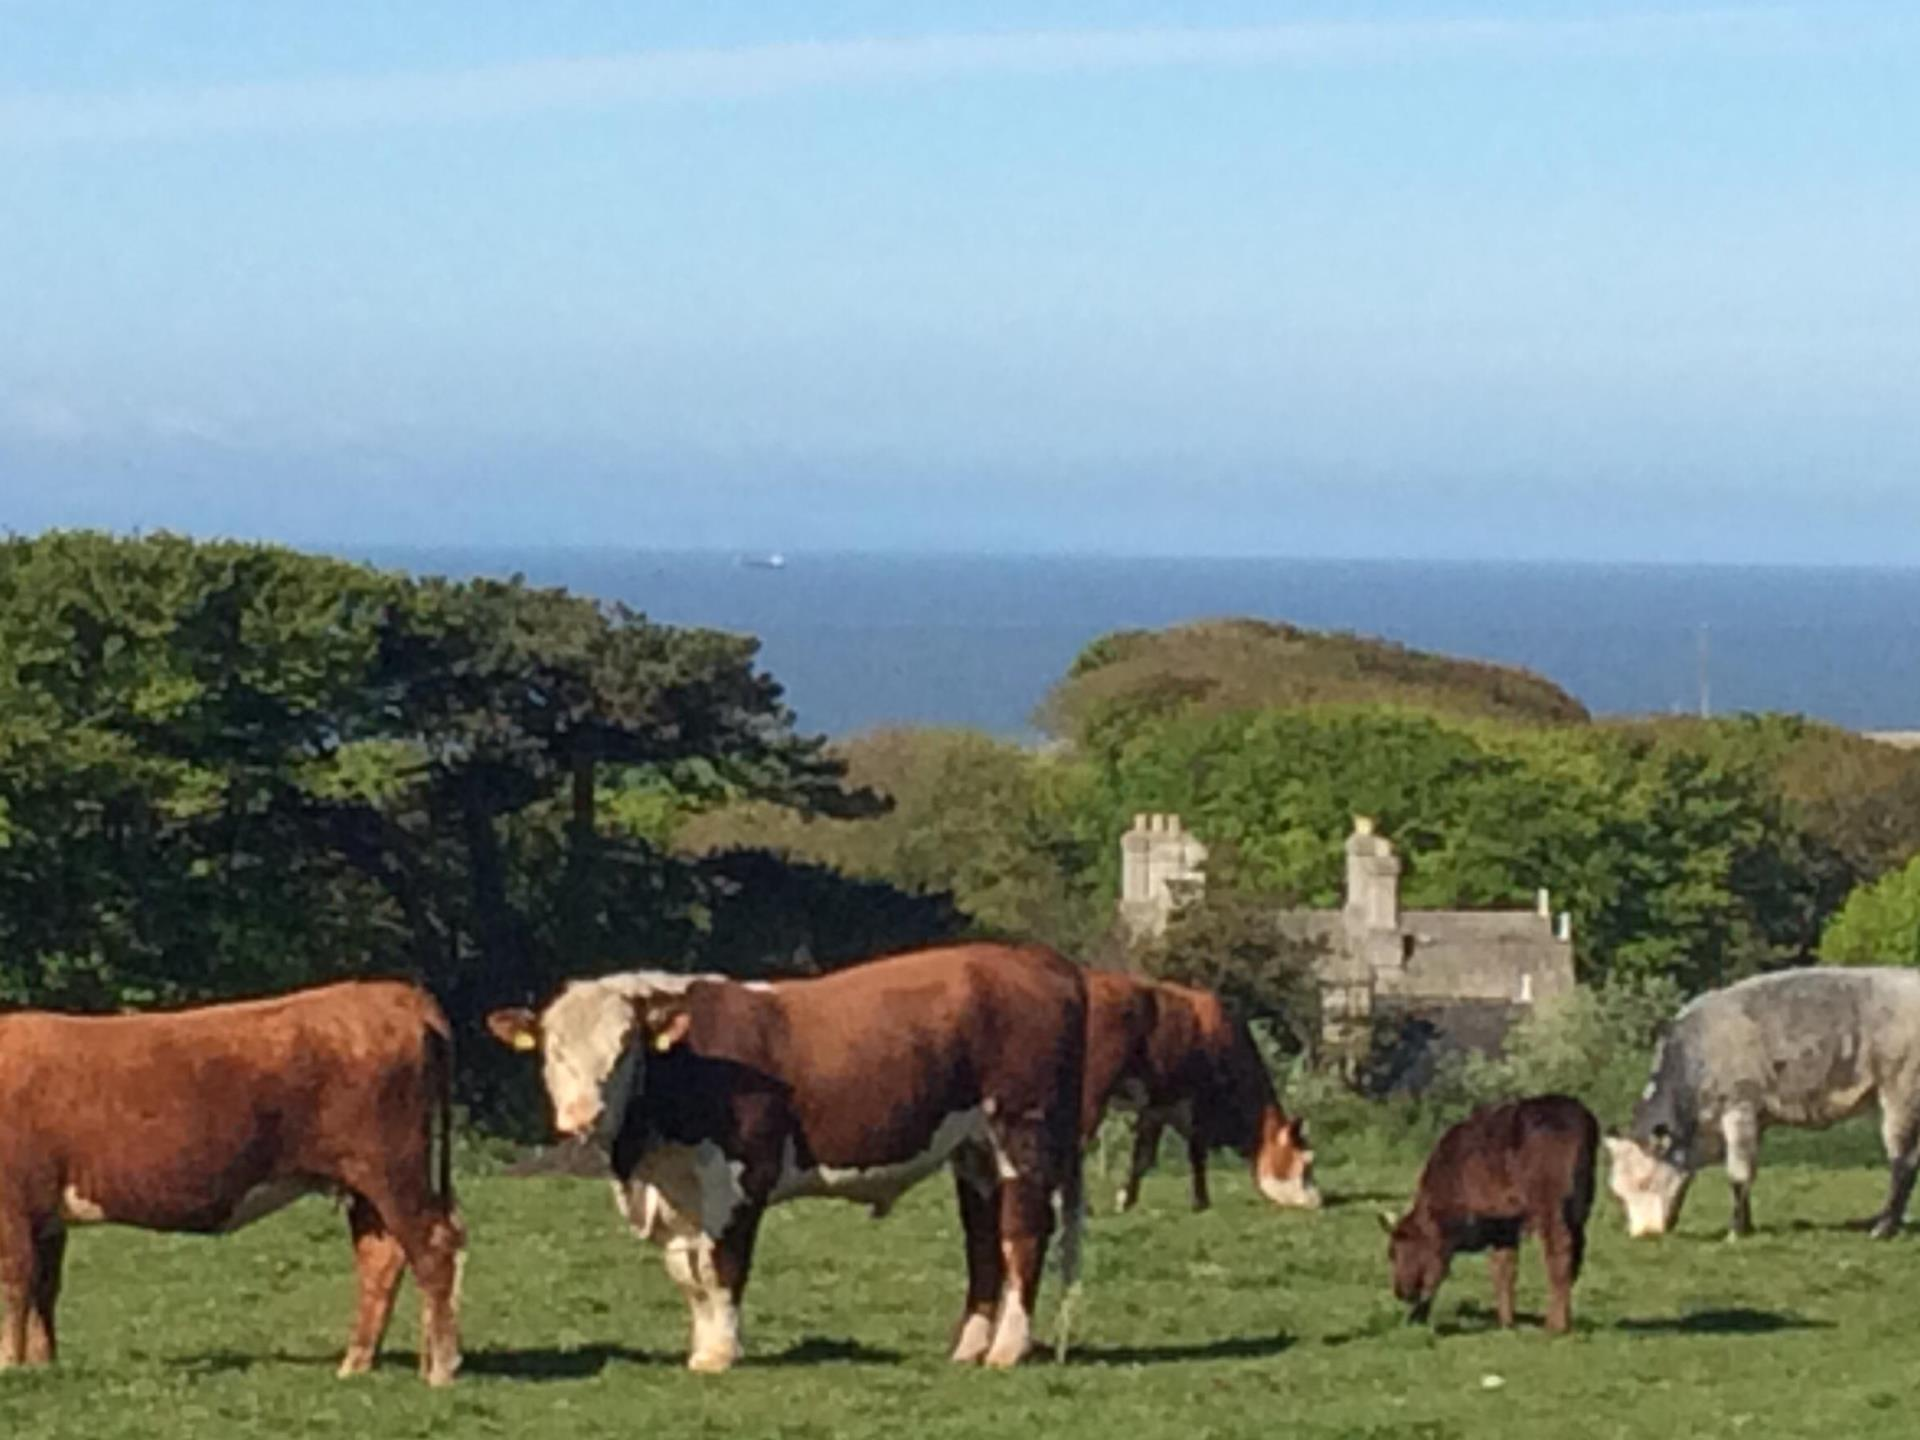 Cattle at Slade Farm